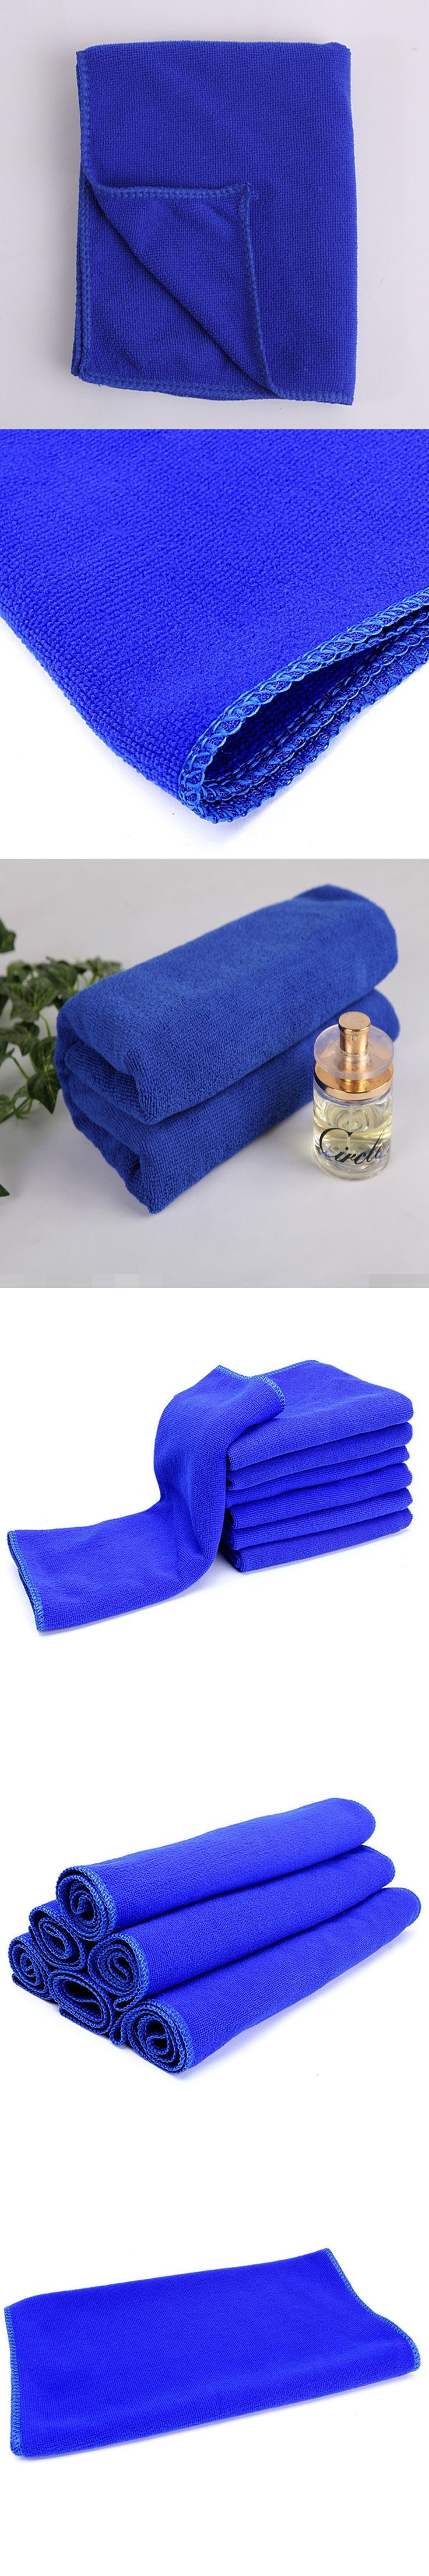 40*40 CM Microfiber Cleaning Cloth Blue Color Kitchen Absorbent Cleaning Towels Soft Eco-Friendly Car Auto Wash Cloth